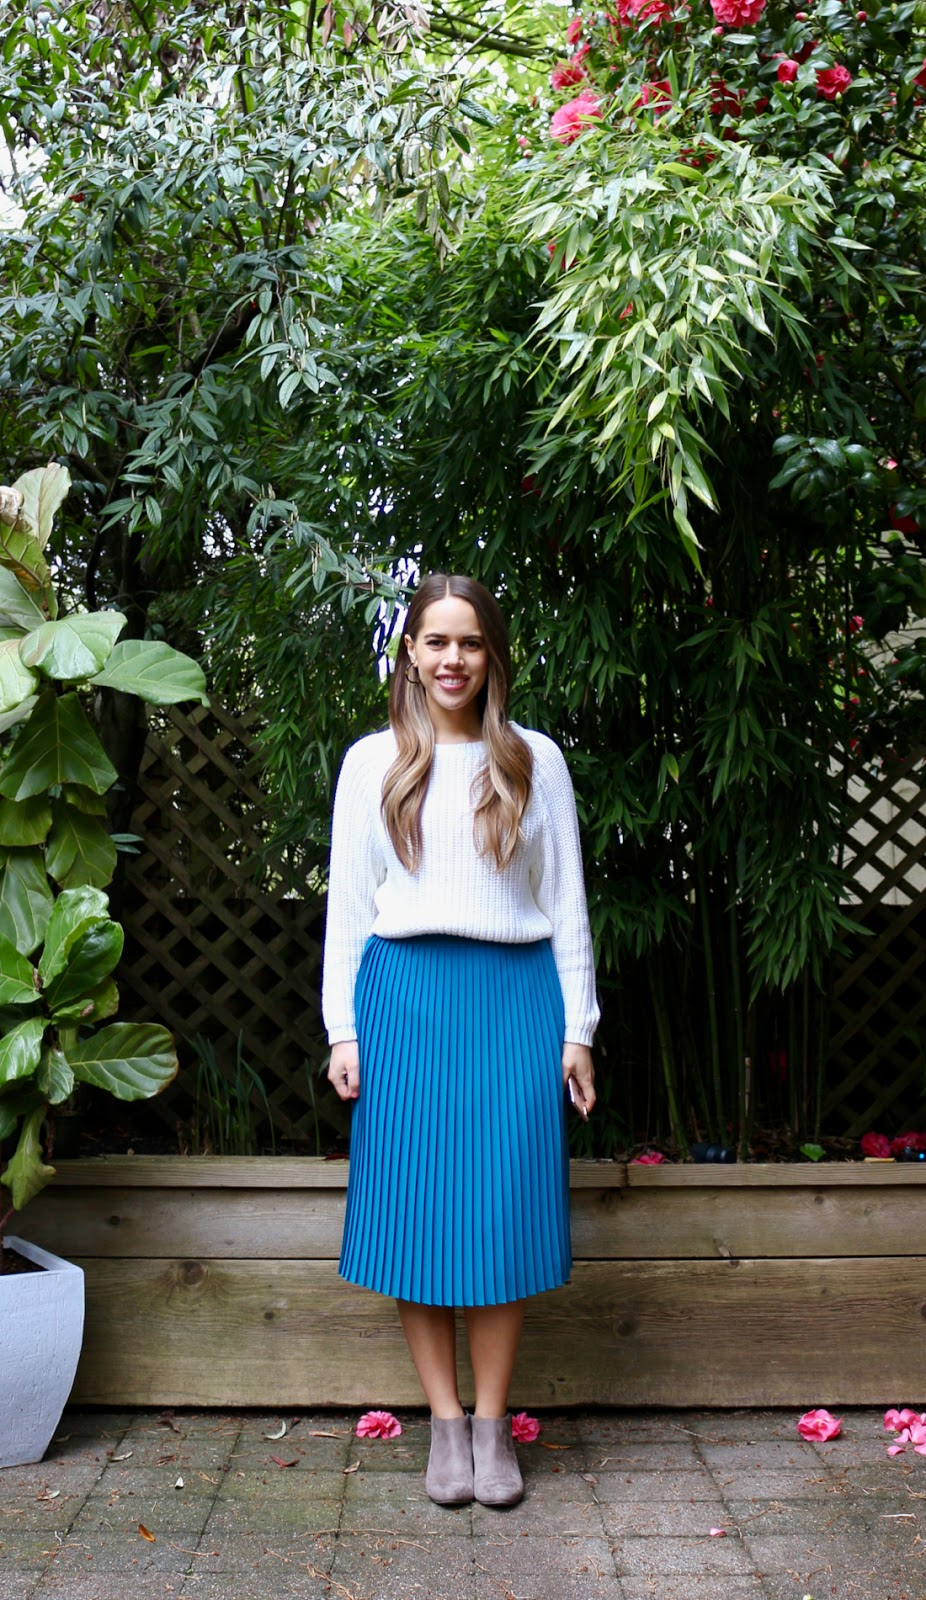 Jules in Flats - Pleated Midi Skirt with Knit Sweater (Business Casual Spring Workwear on a Budget)